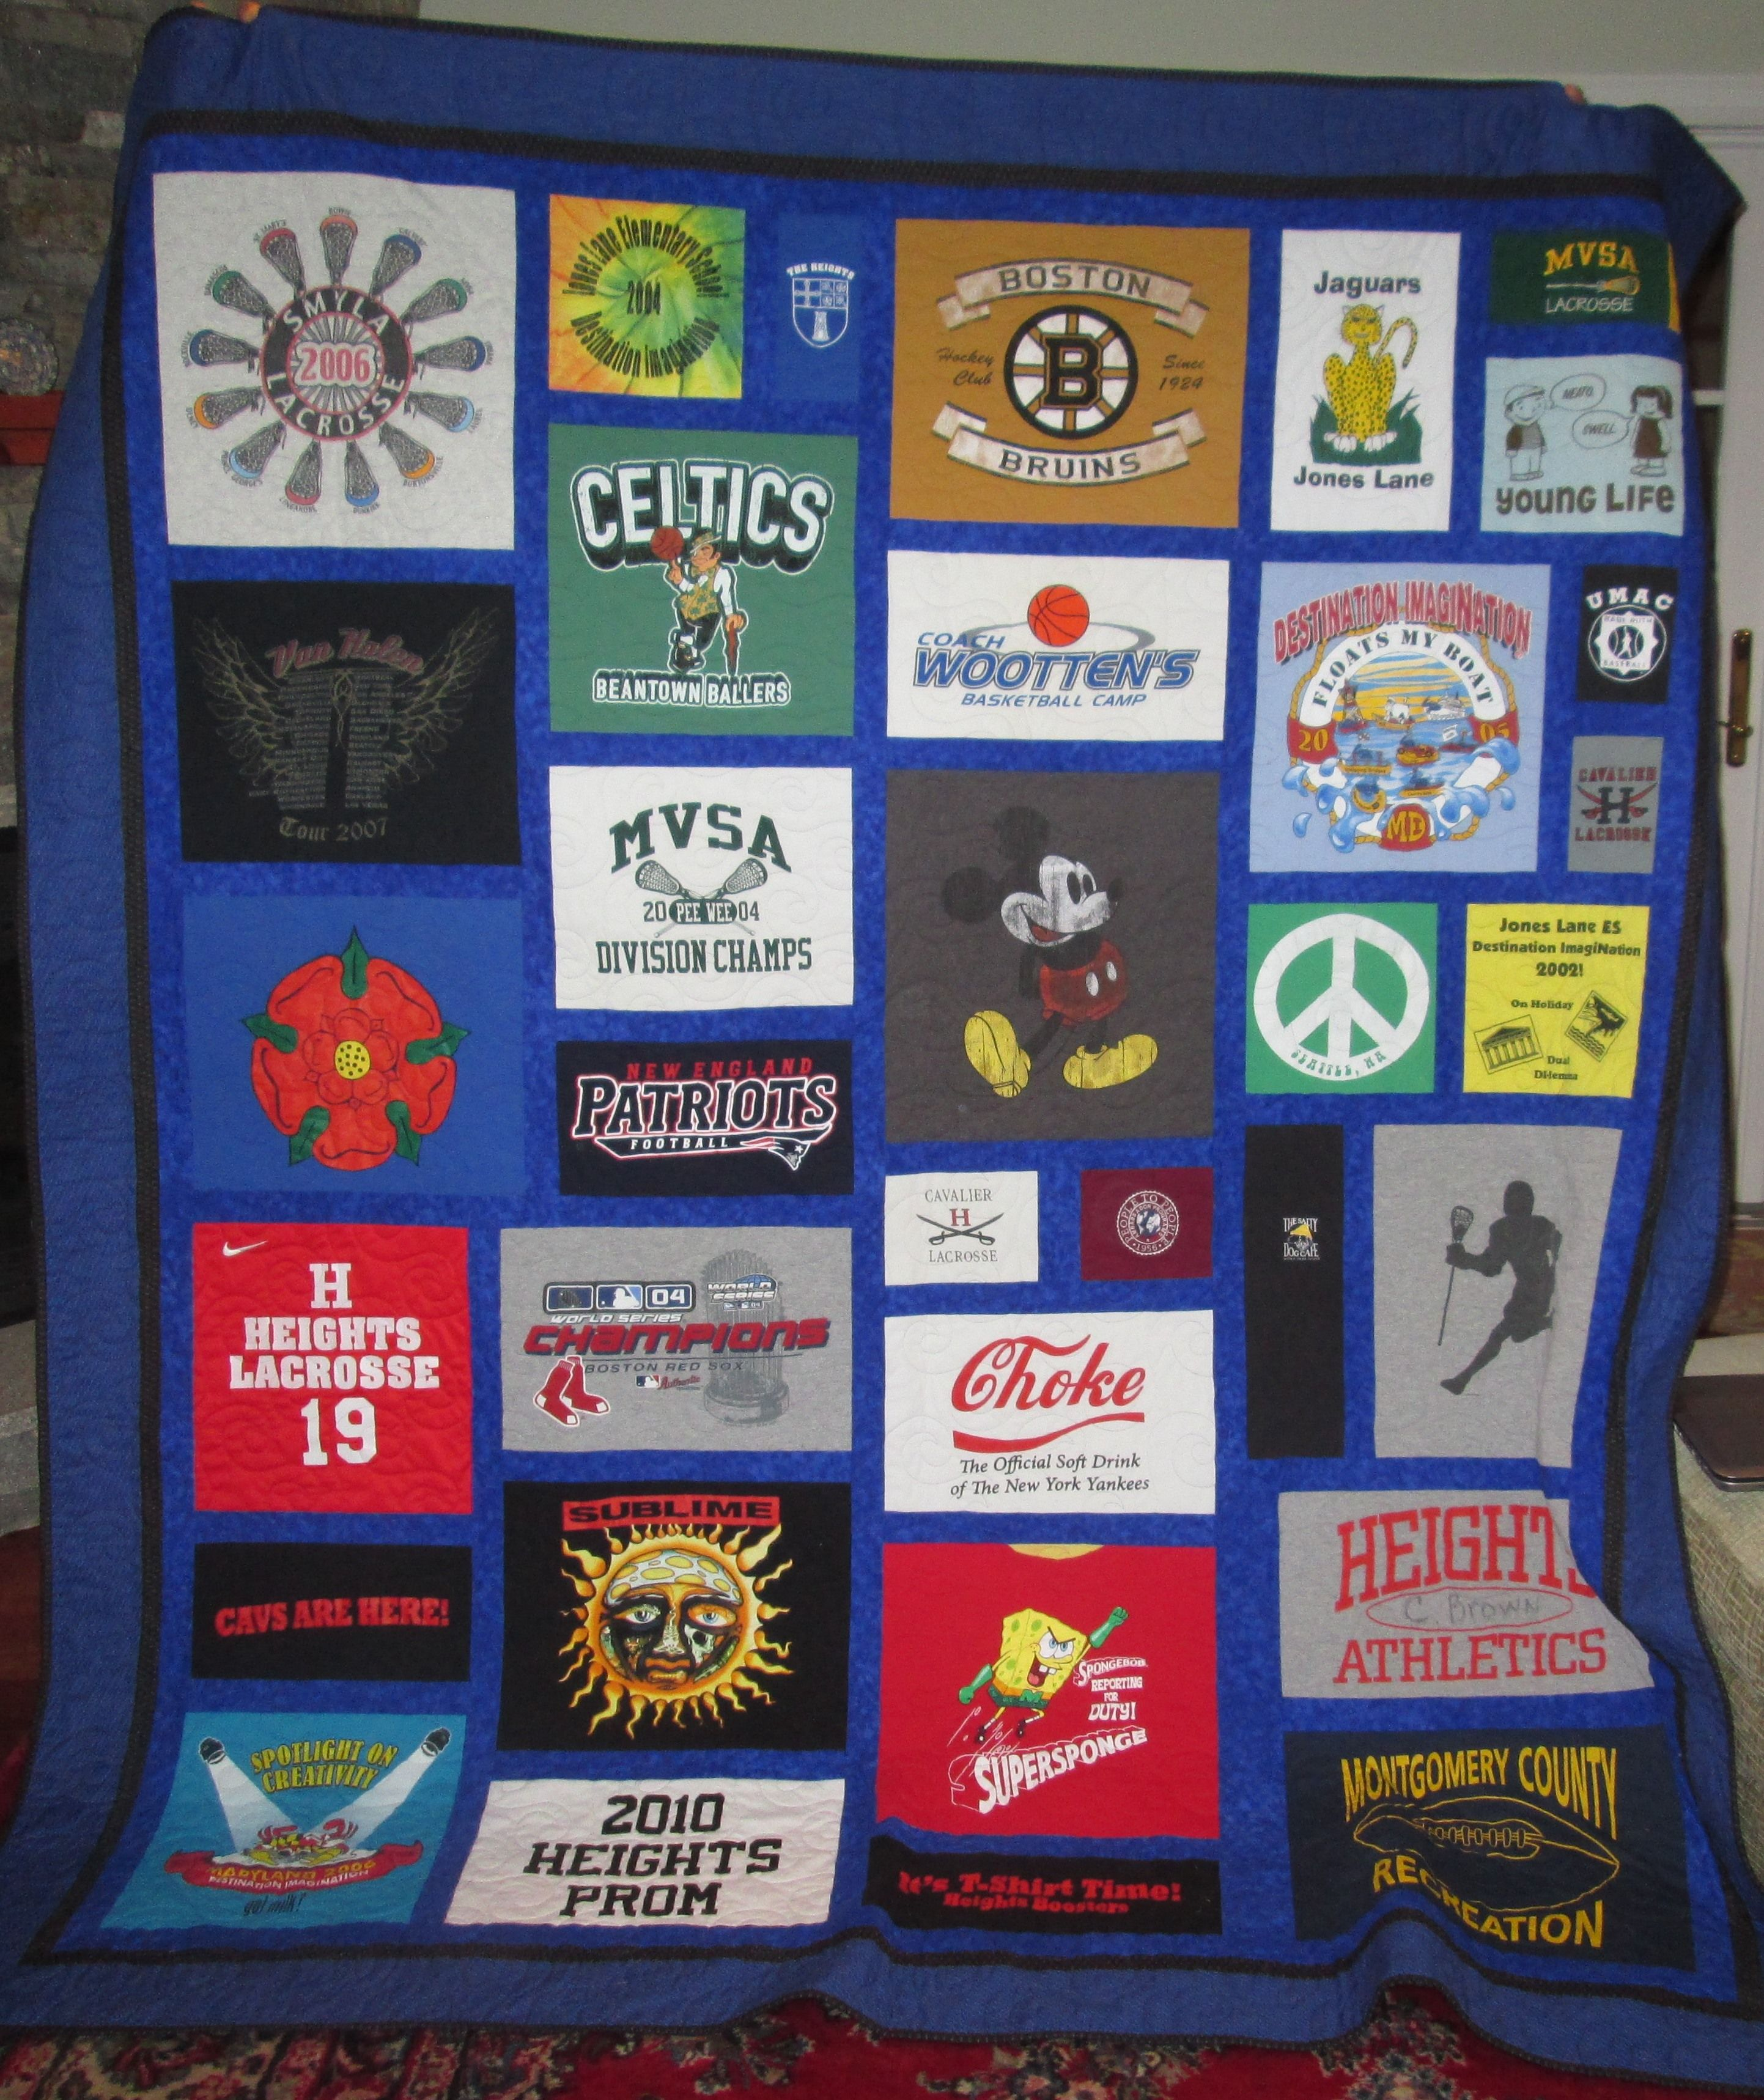 Custom Queen Size T Shirt/ Memory Quilt by Stitches by Stiles CustomMade.com